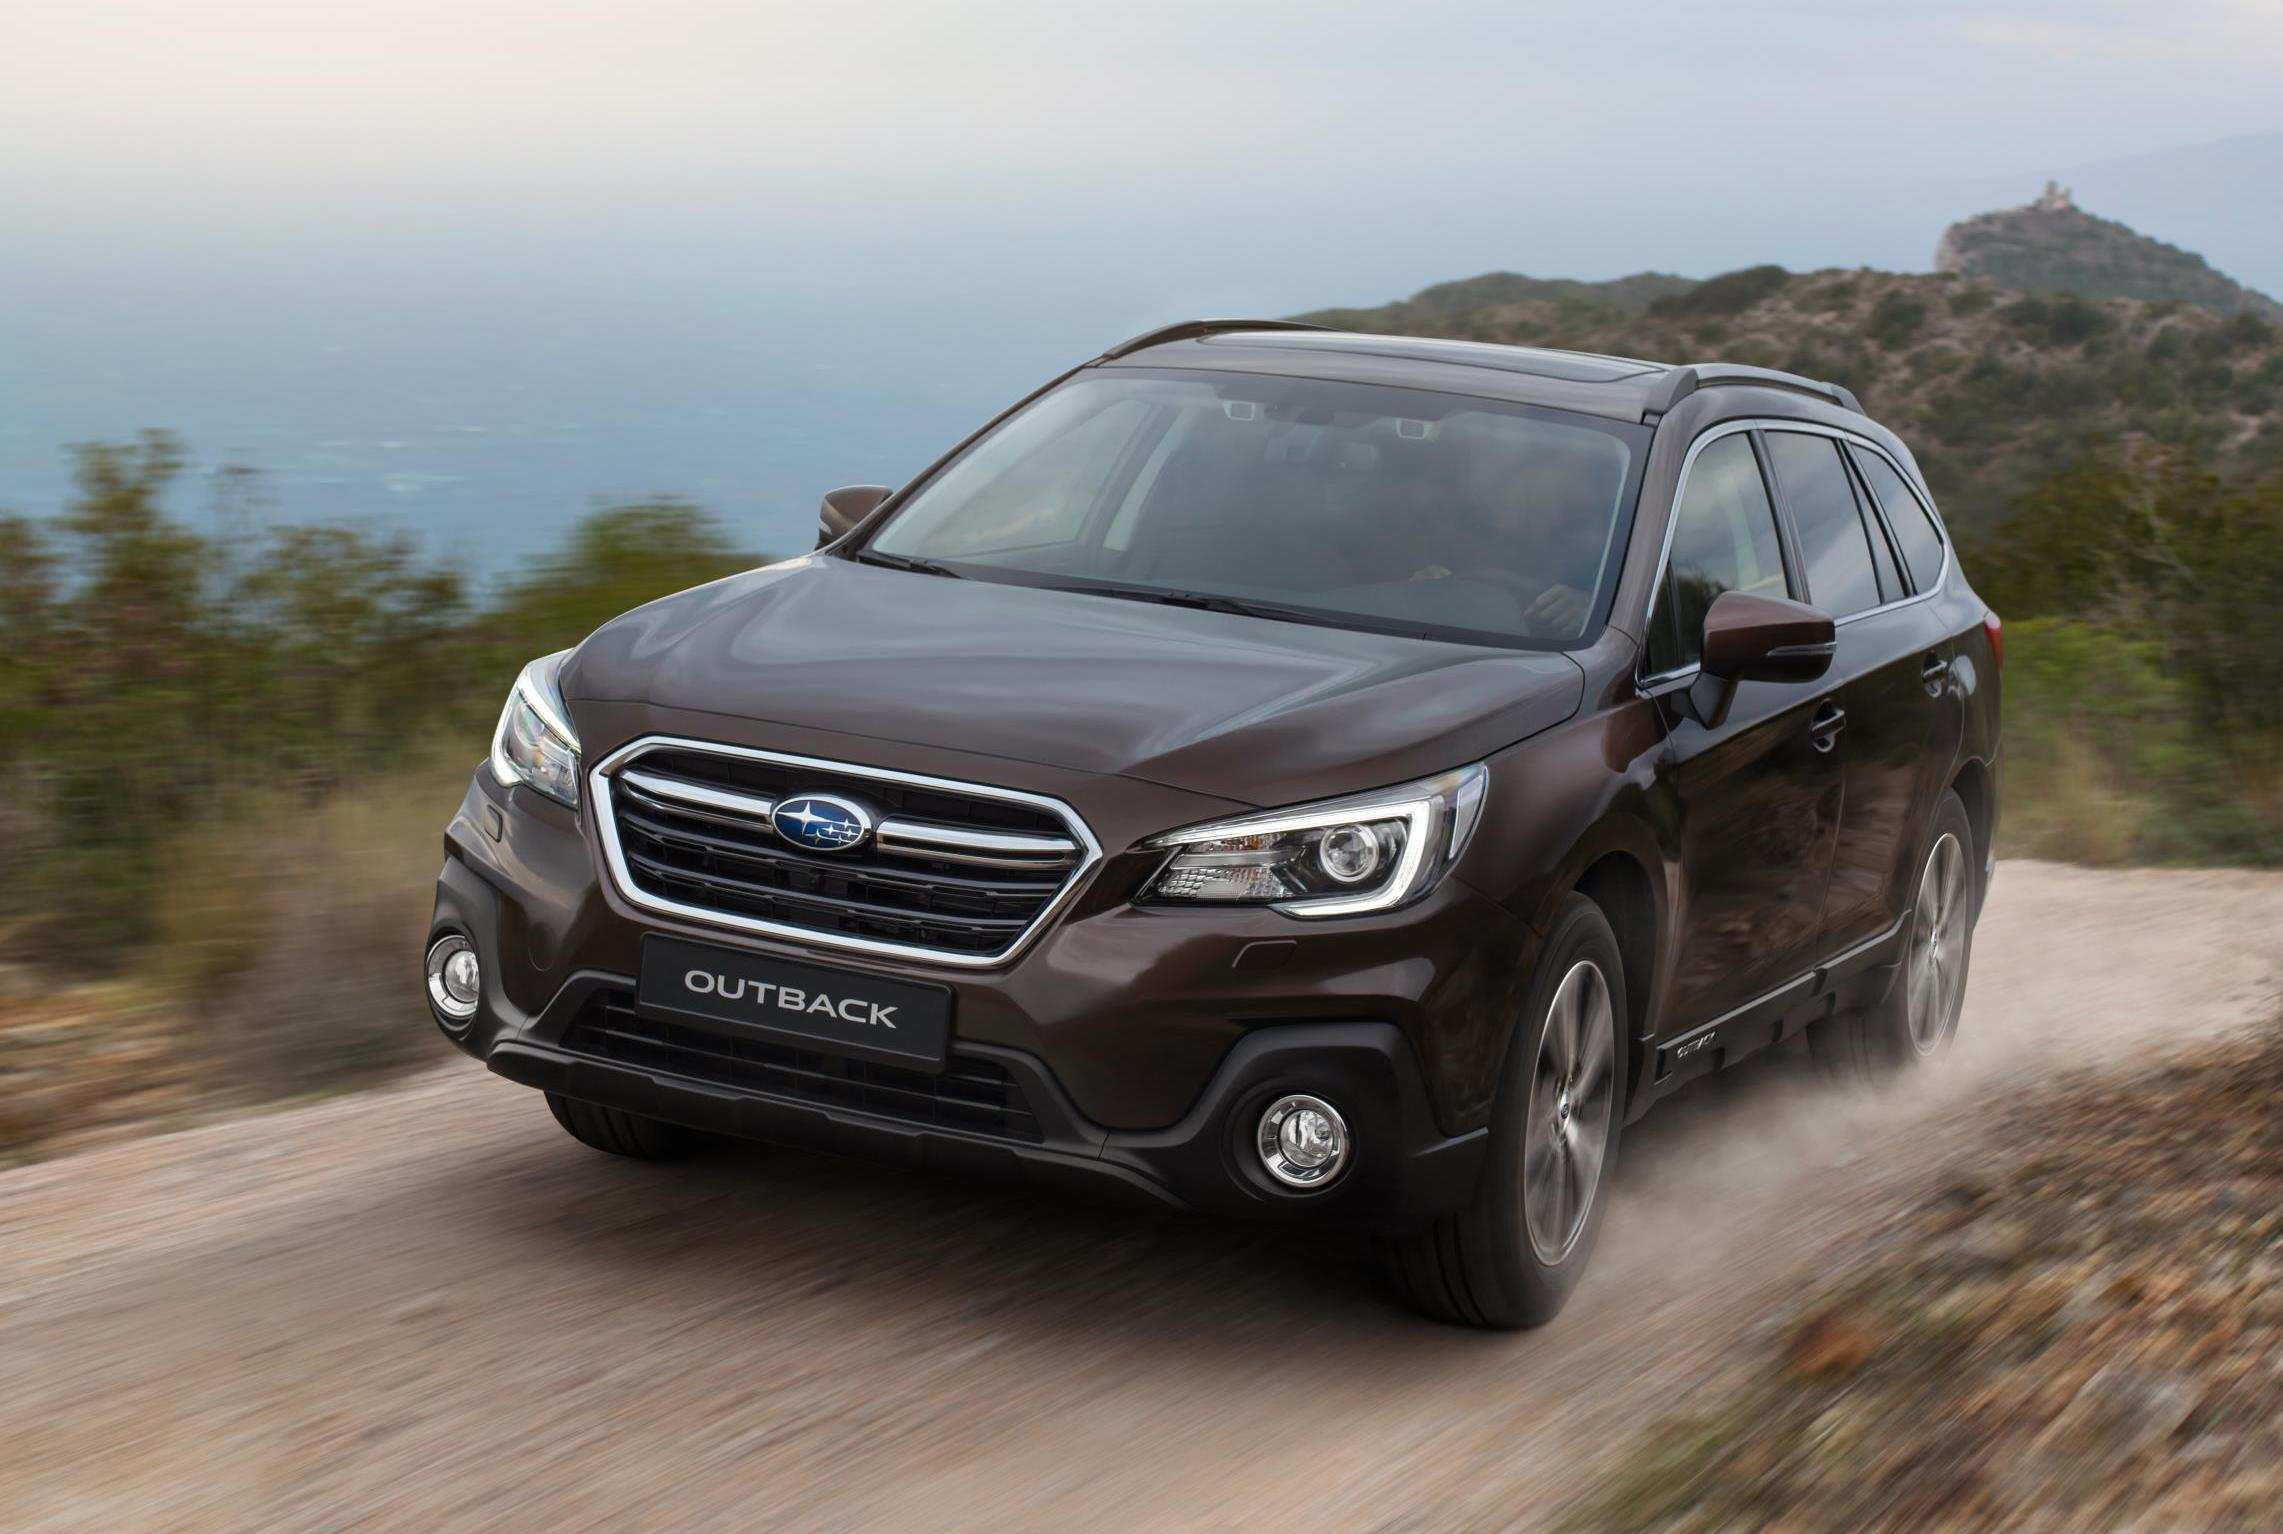 92 All New Subaru Outback 2020 Australia New Concept